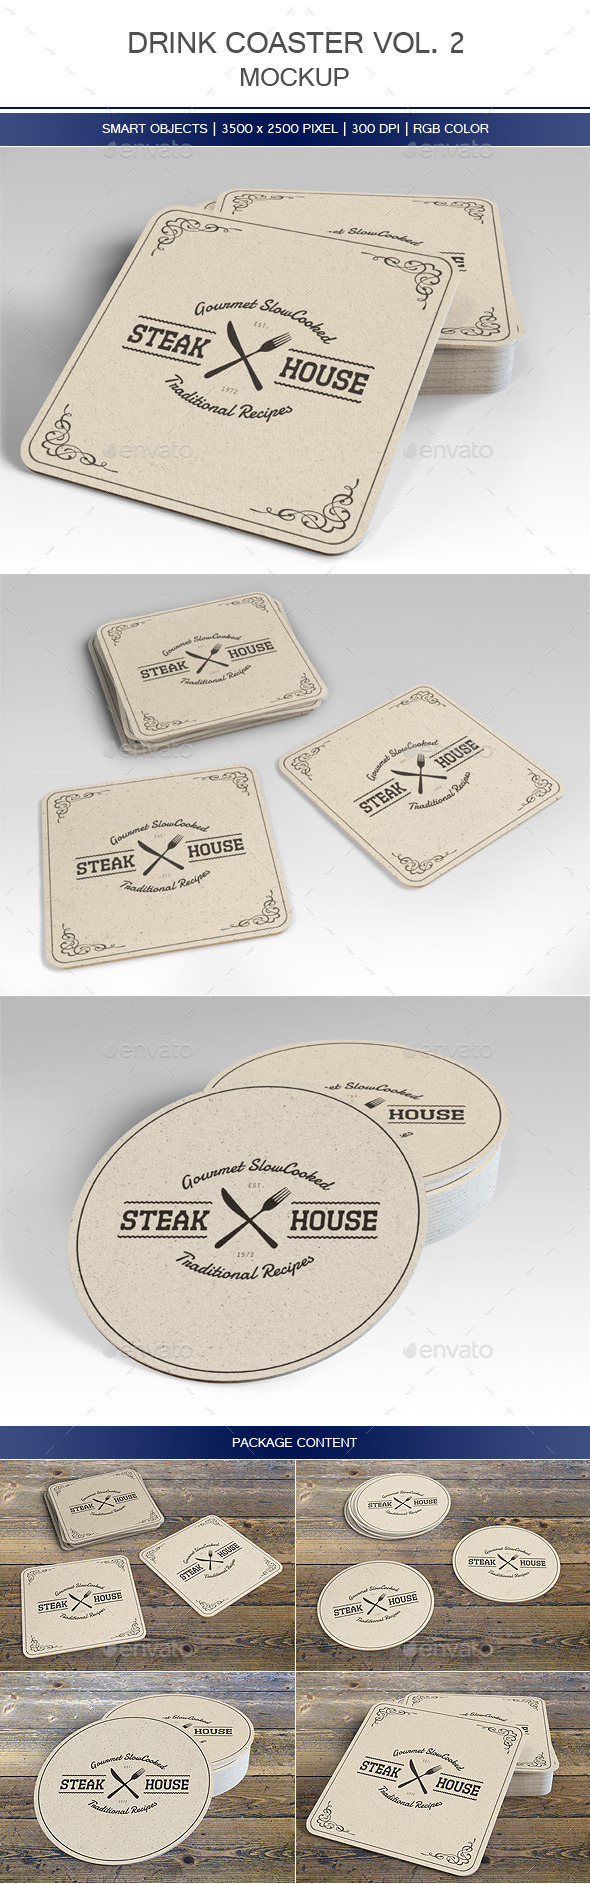 GraphicRiver Drink Coaster Mock-Up Vol 2 9020902